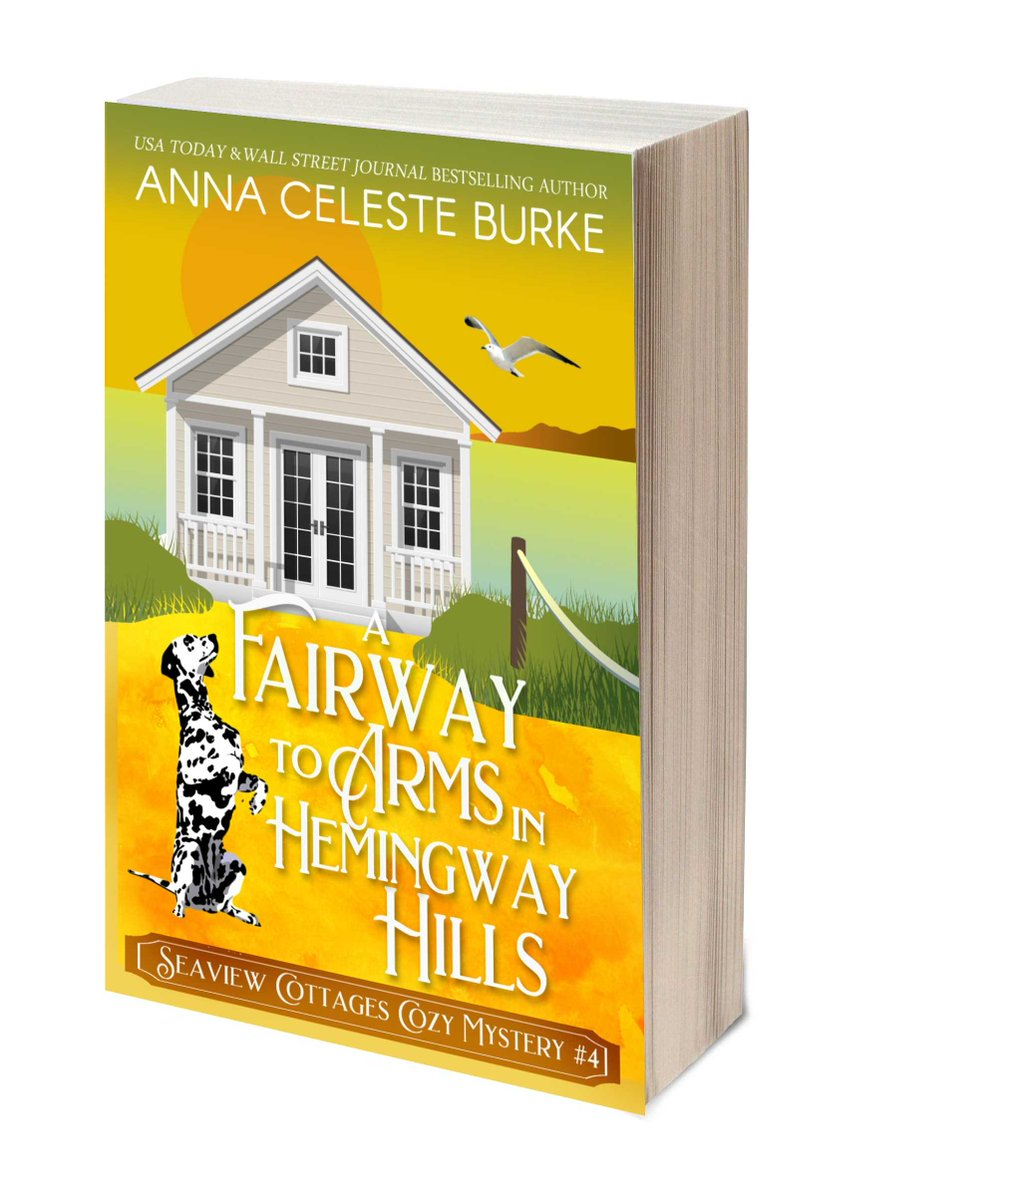 "When there's trouble at the swanky resort, it's time to go for the G.O.L.D. ★A FAIRWAY TO ARMS IN HEMINGWAY HILLS★ 🦉   #ASMSG #bookstoread ""@aburke59 ✎via Pizzazz Book Promotions"